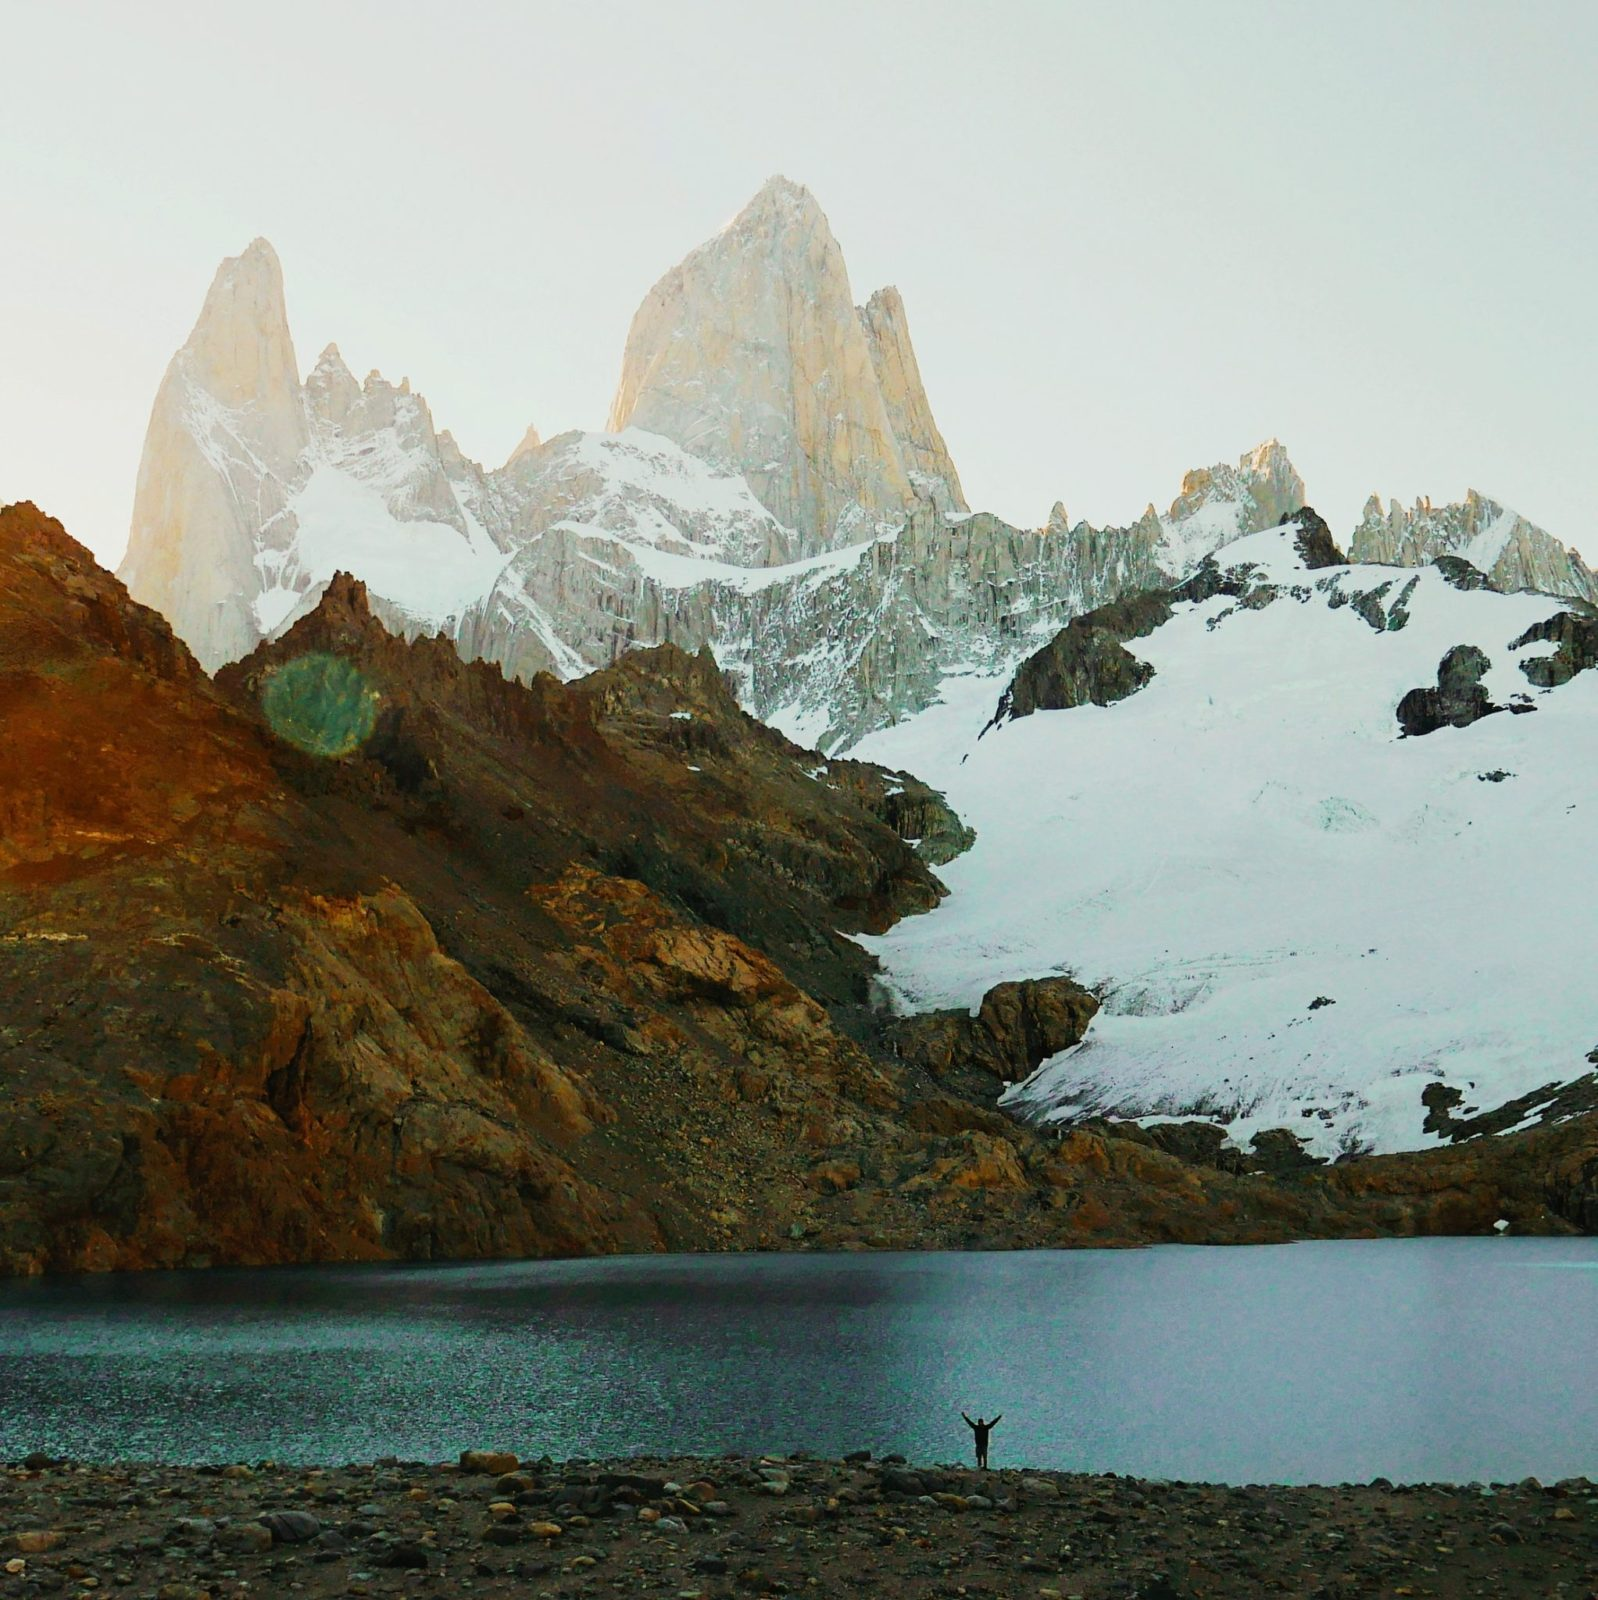 An incredibly humbling picture of fitz roy mountain on a multi-day trek in the region